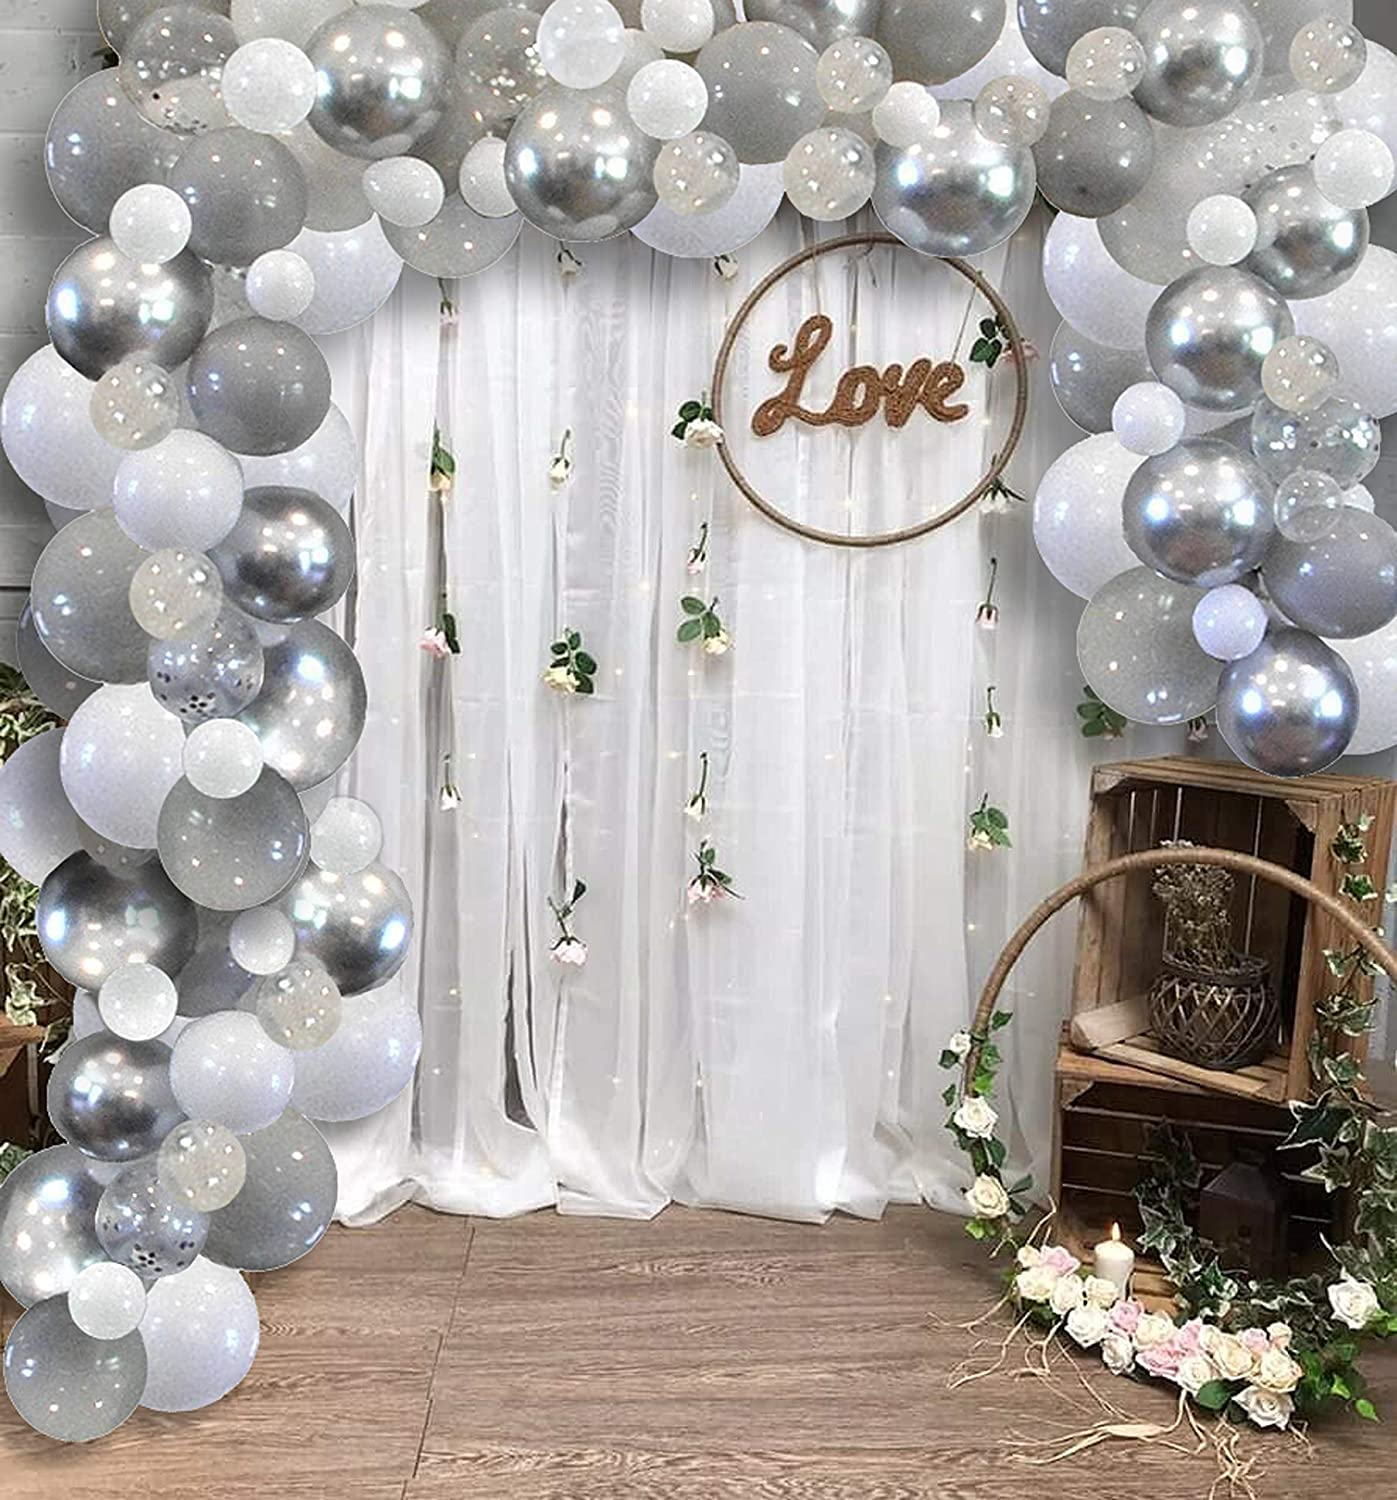 Famzigo Balloon Arch kit Balloon Garland - Strong Thick Balloons, Metallic Silver, Light Grey, White&Clear/Chrome Confetti, Birthday Party Decor, Decorations 4 Parties, DIY Wedding Decoration Kits